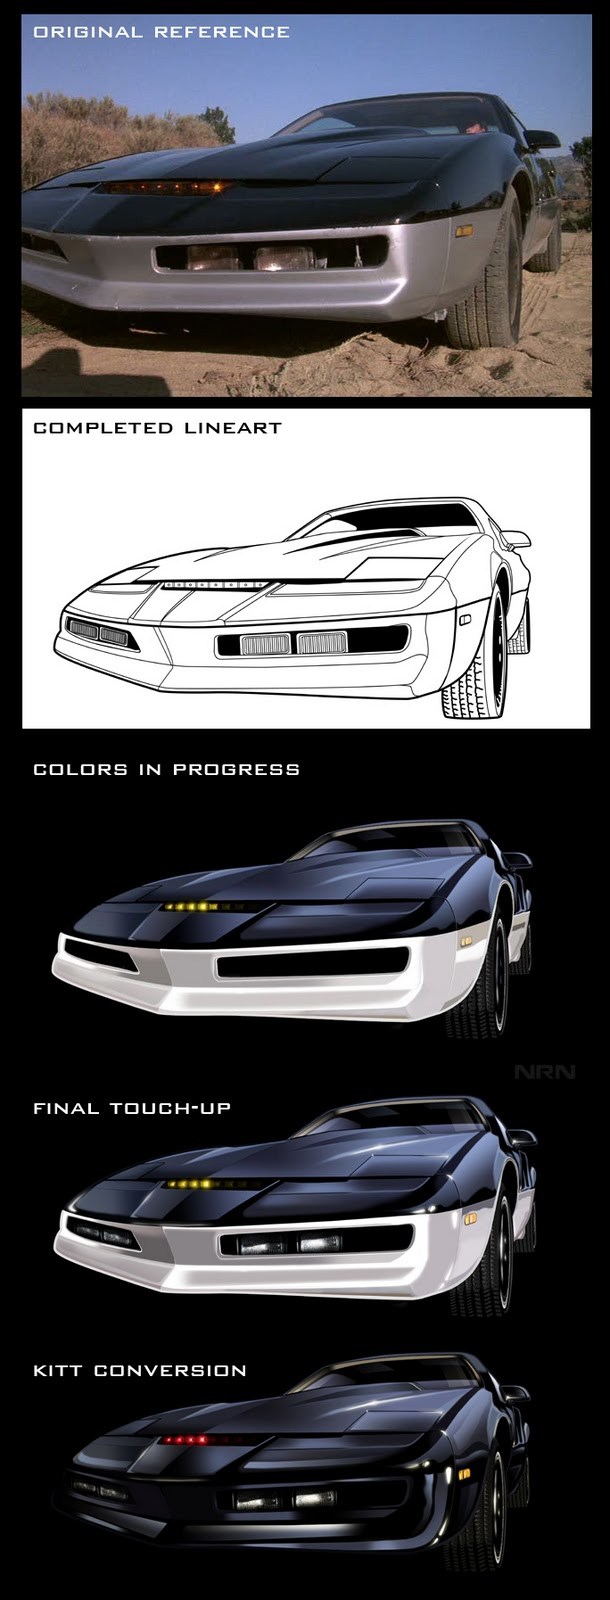 46+] Karr vs Kitt Wallpaper on WallpaperSafari